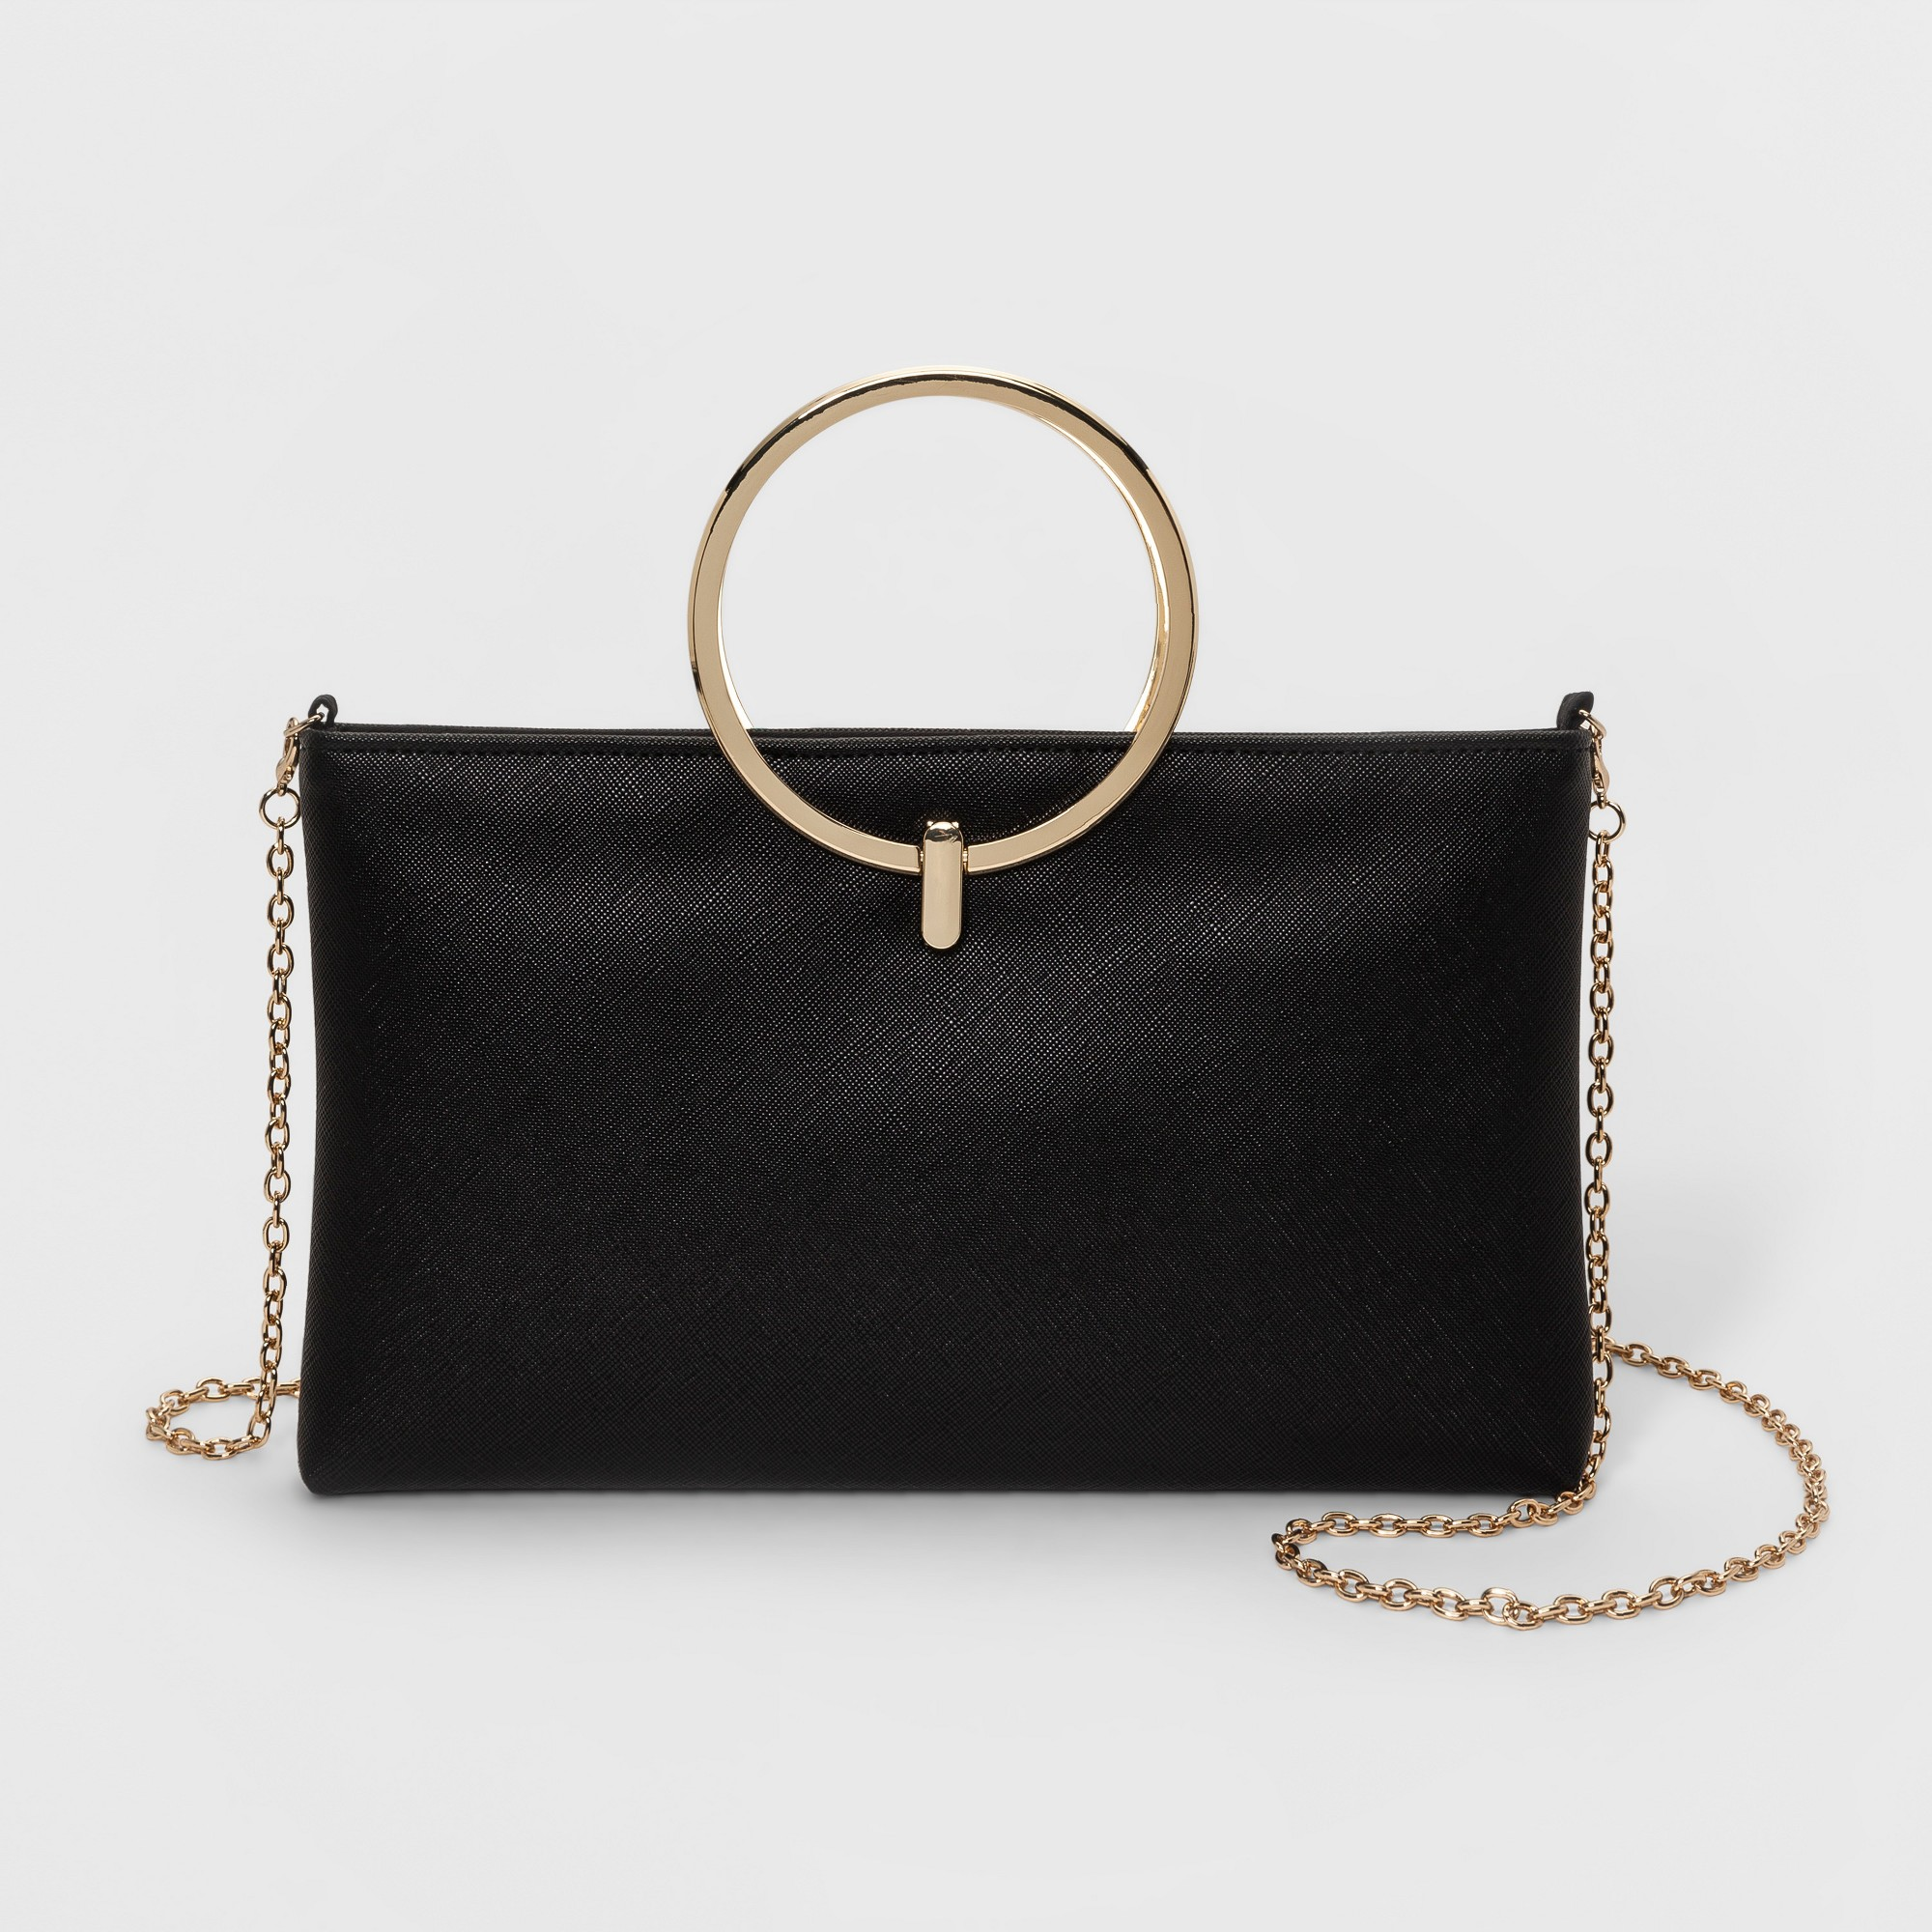 a9ce84e2f6a6 Estee   Lilly Ring Handle Clutch - Black